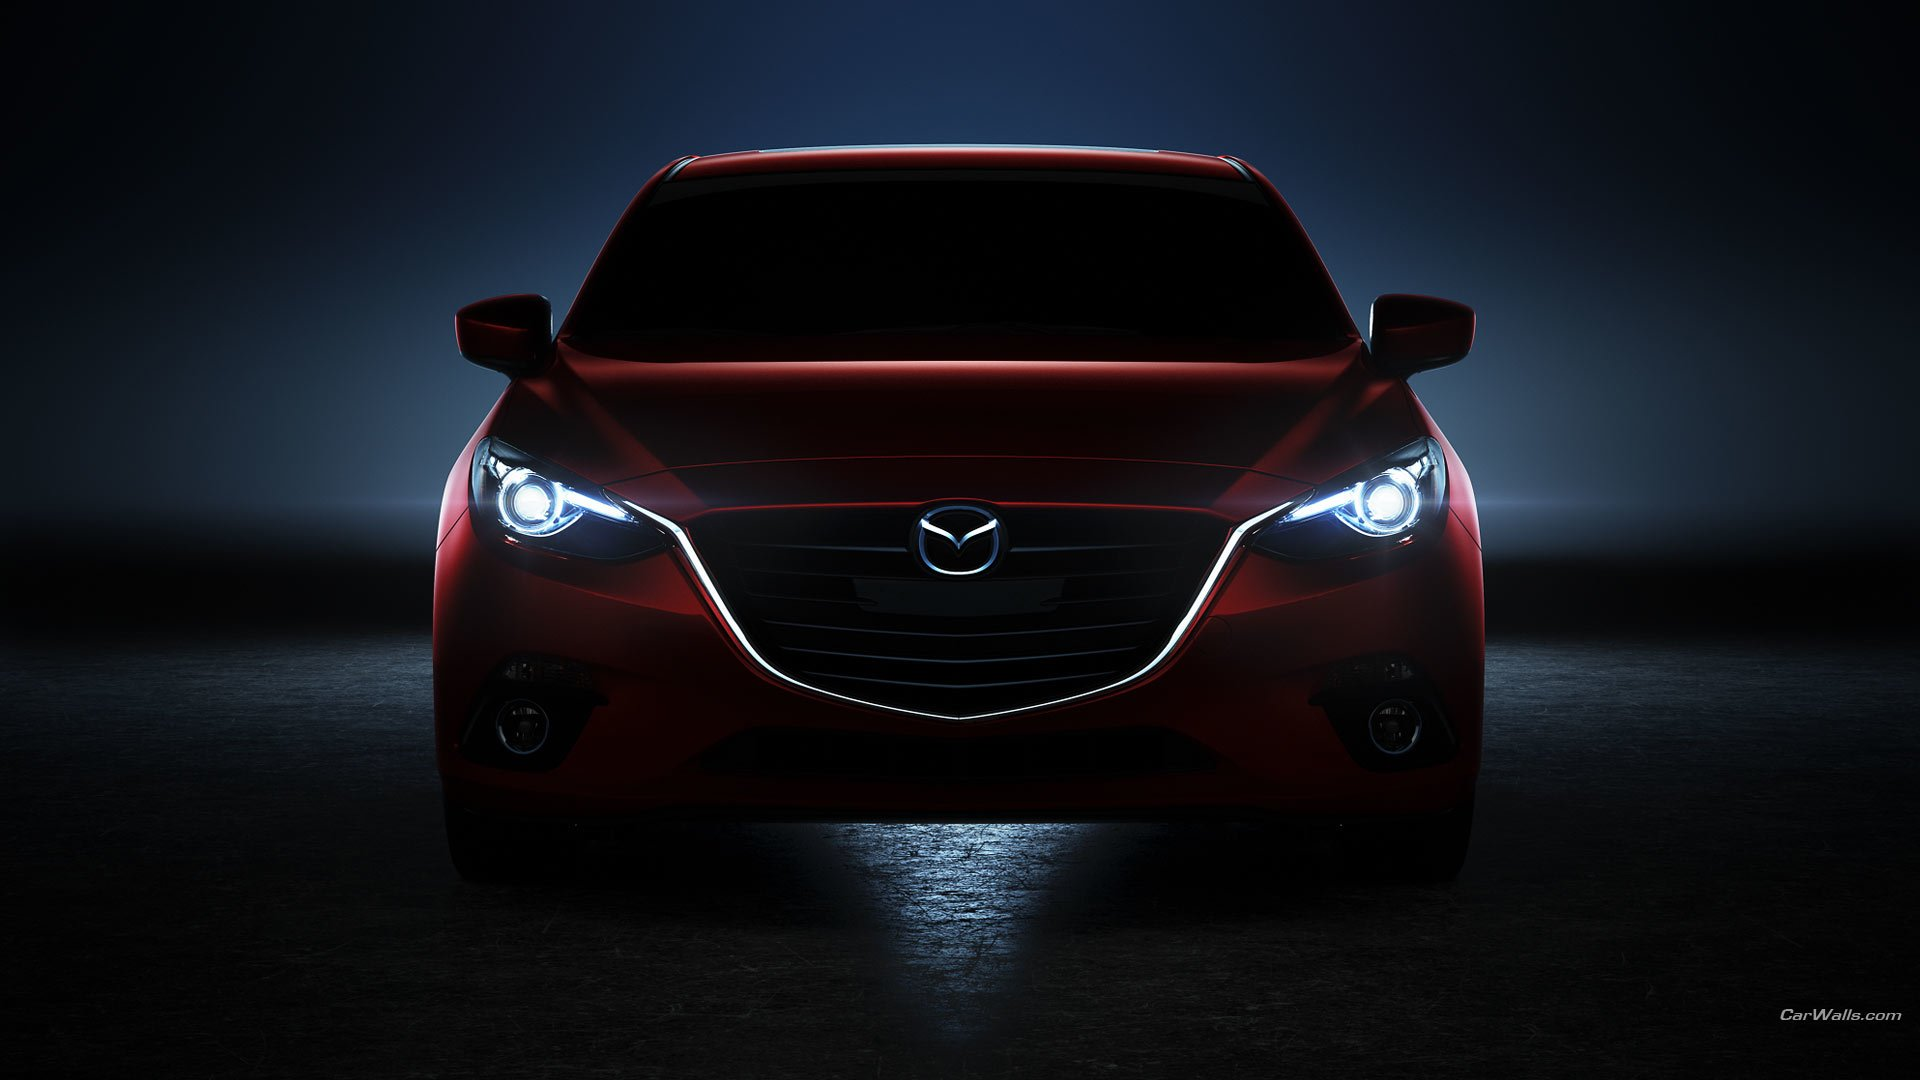 18 Mazda 3 Hd Wallpapers Background Images Wallpaper Abyss